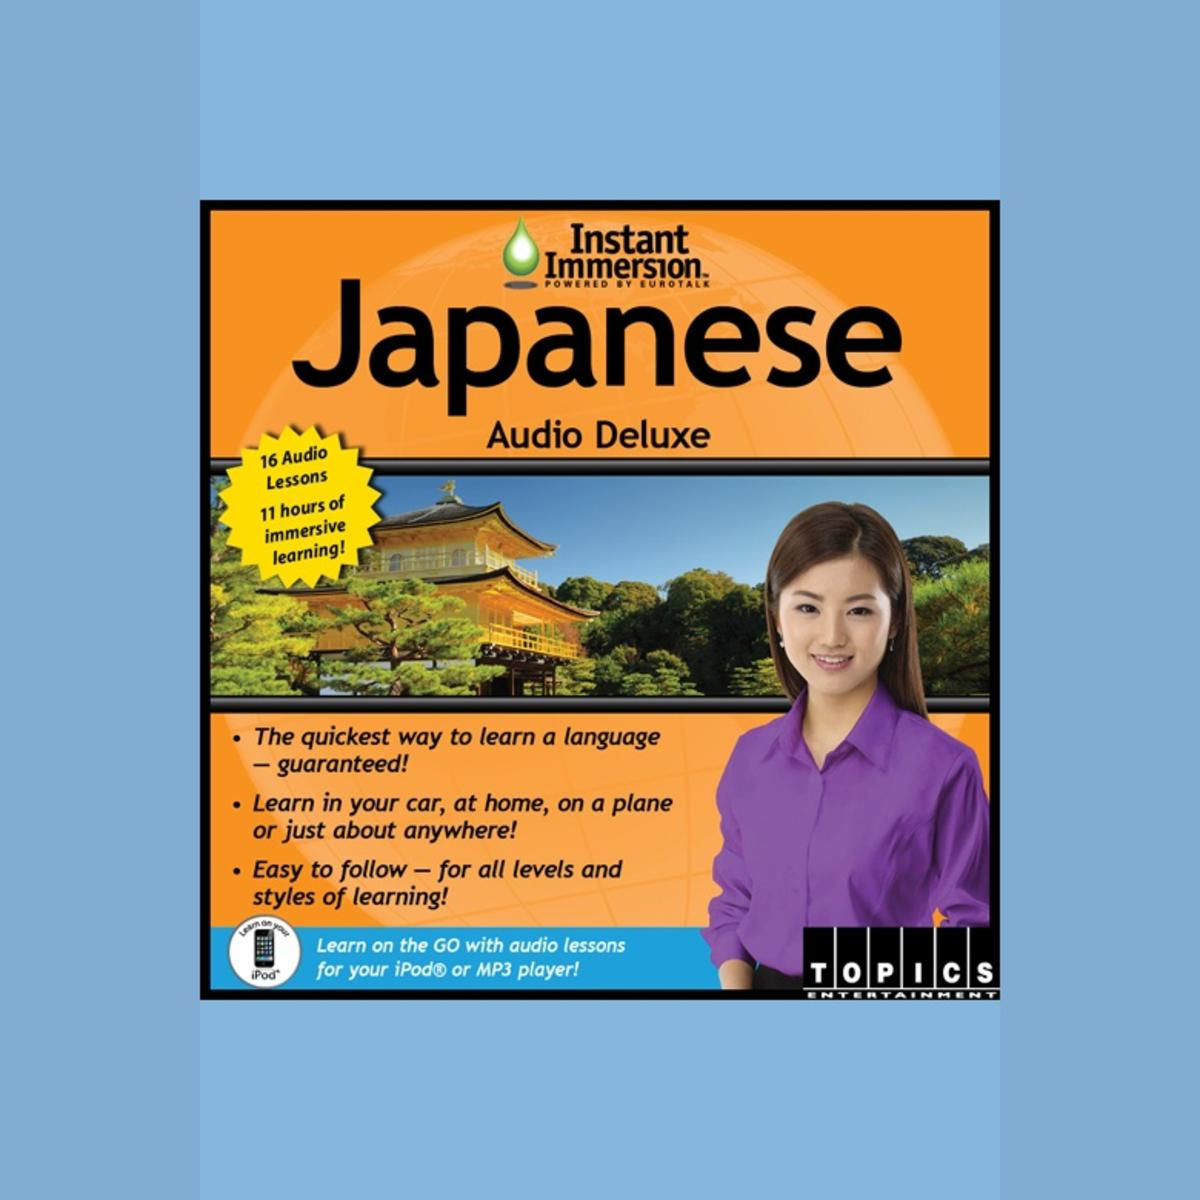 Instant Immersion Japanese Audio Deluxe - Audiobook